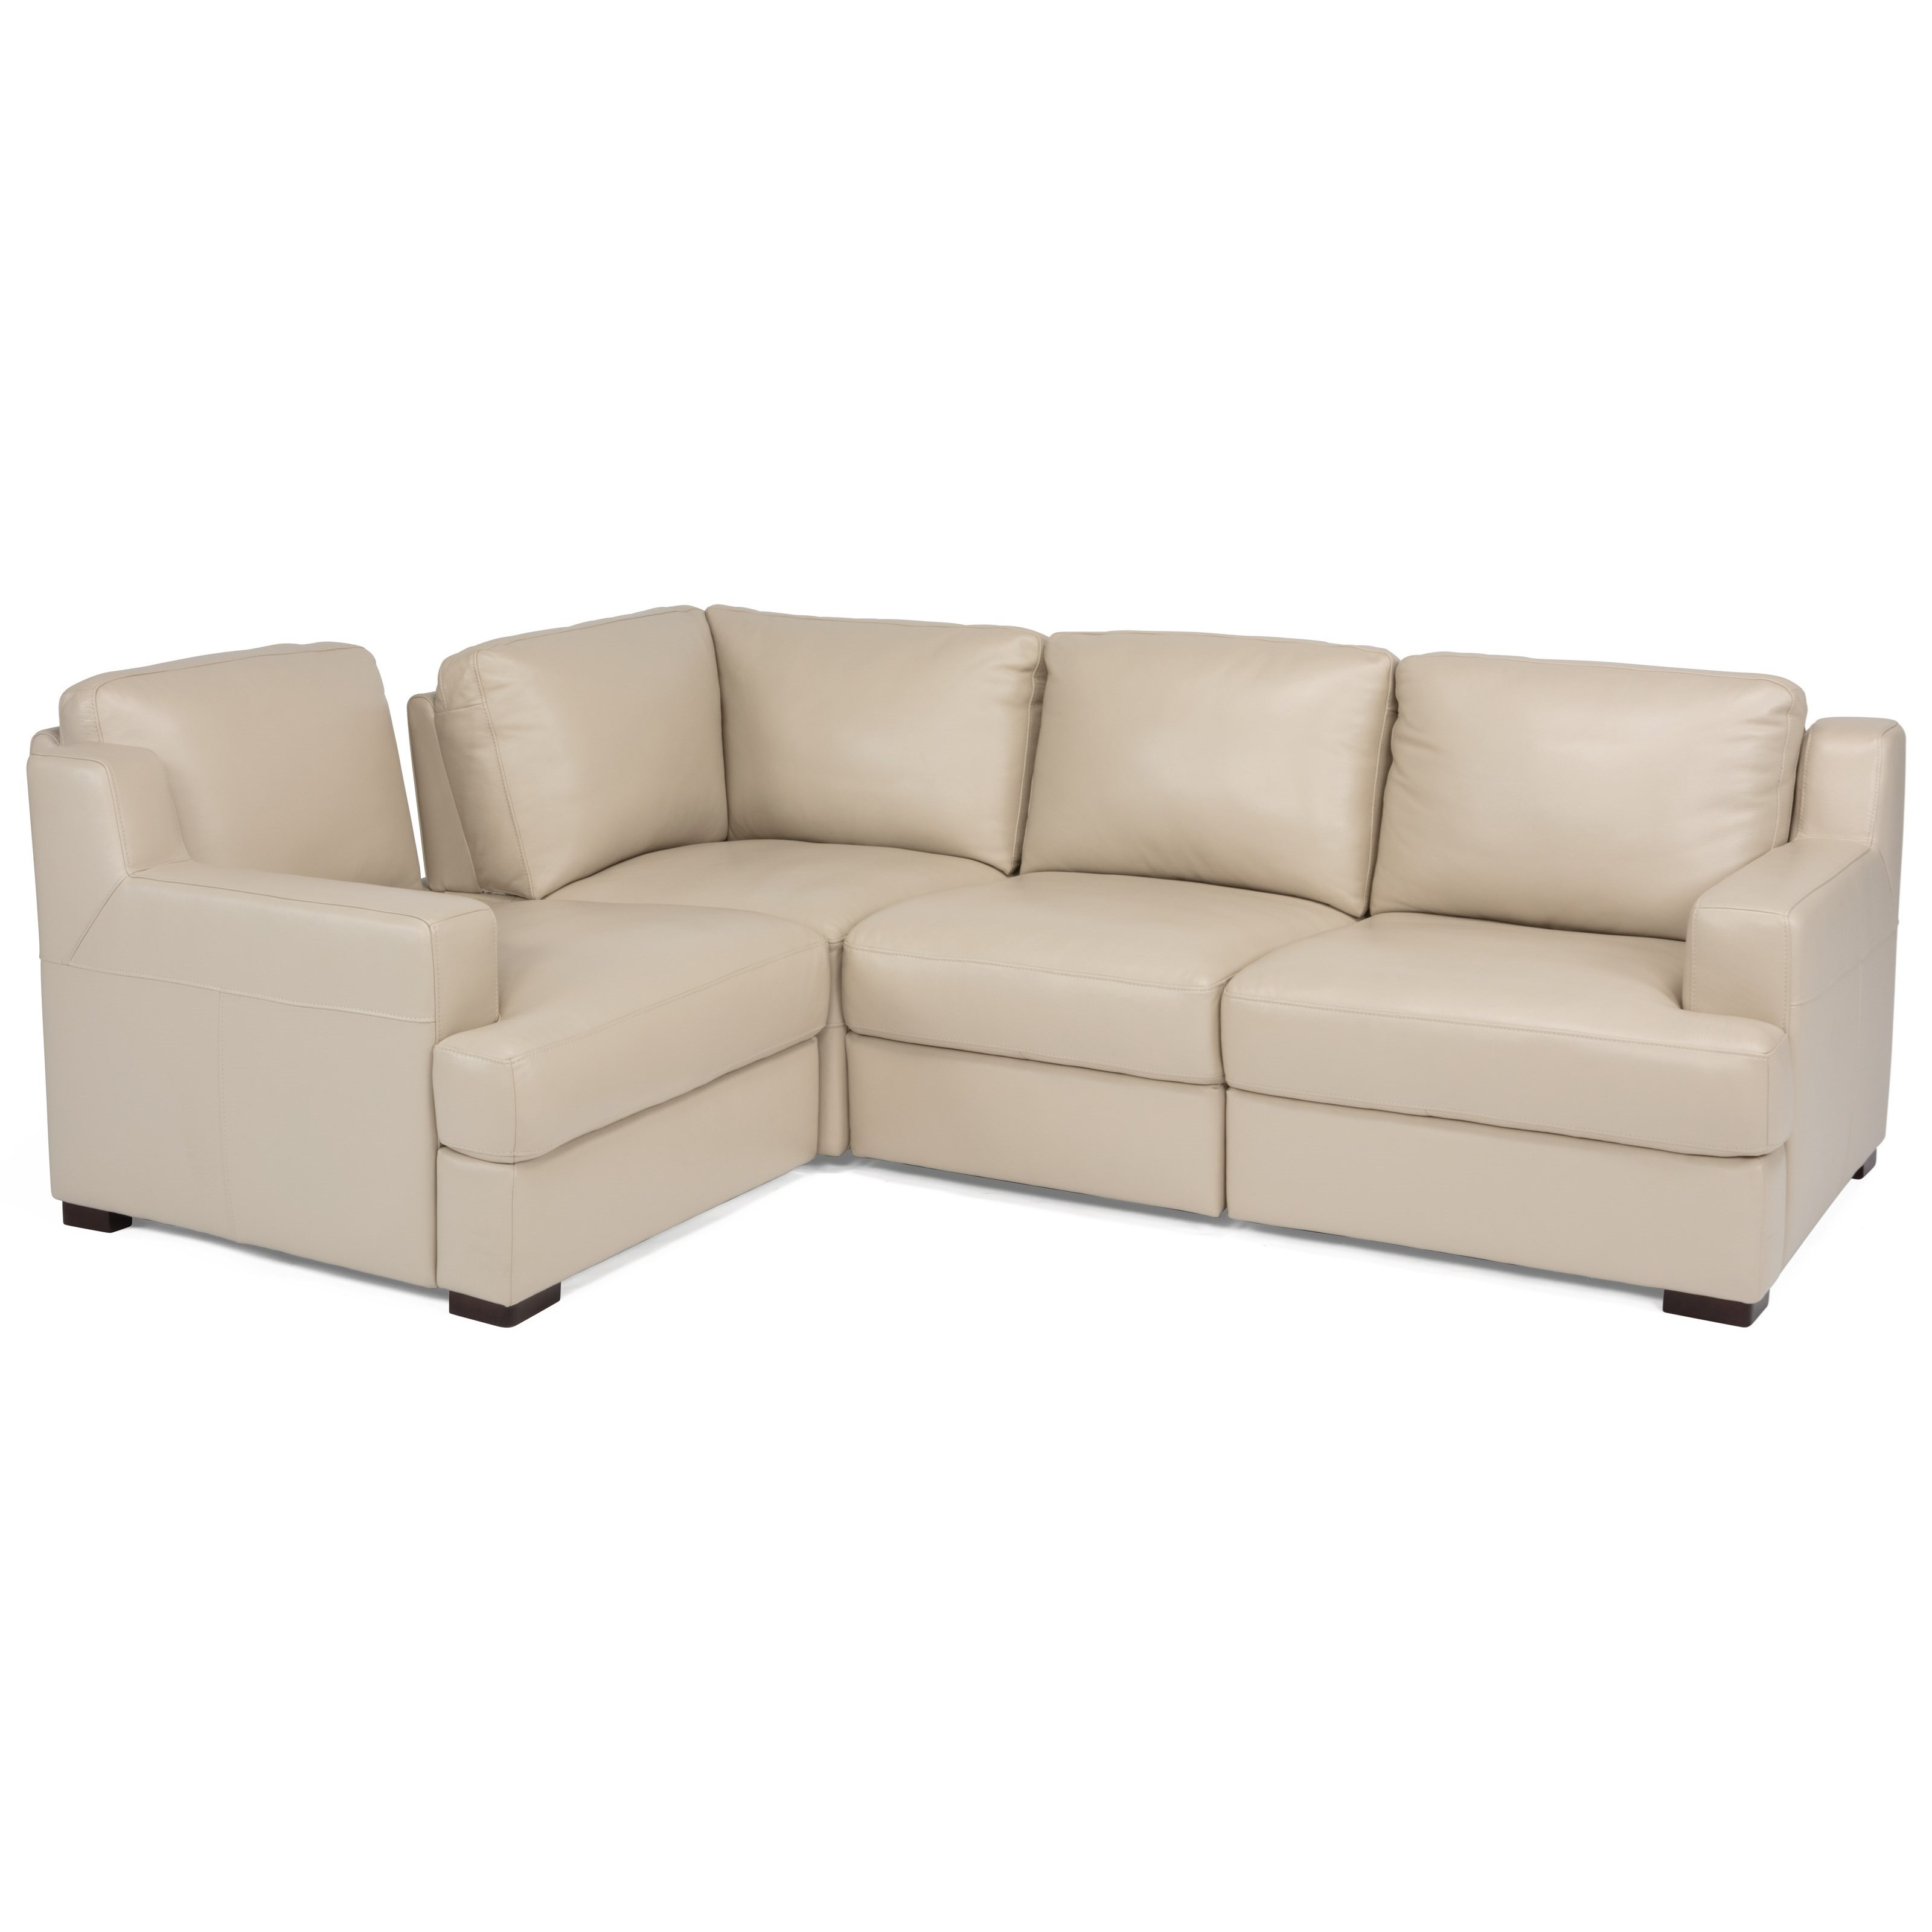 Latitudes- Dowd 4-Piece Sectional by Flexsteel at Walker's Furniture